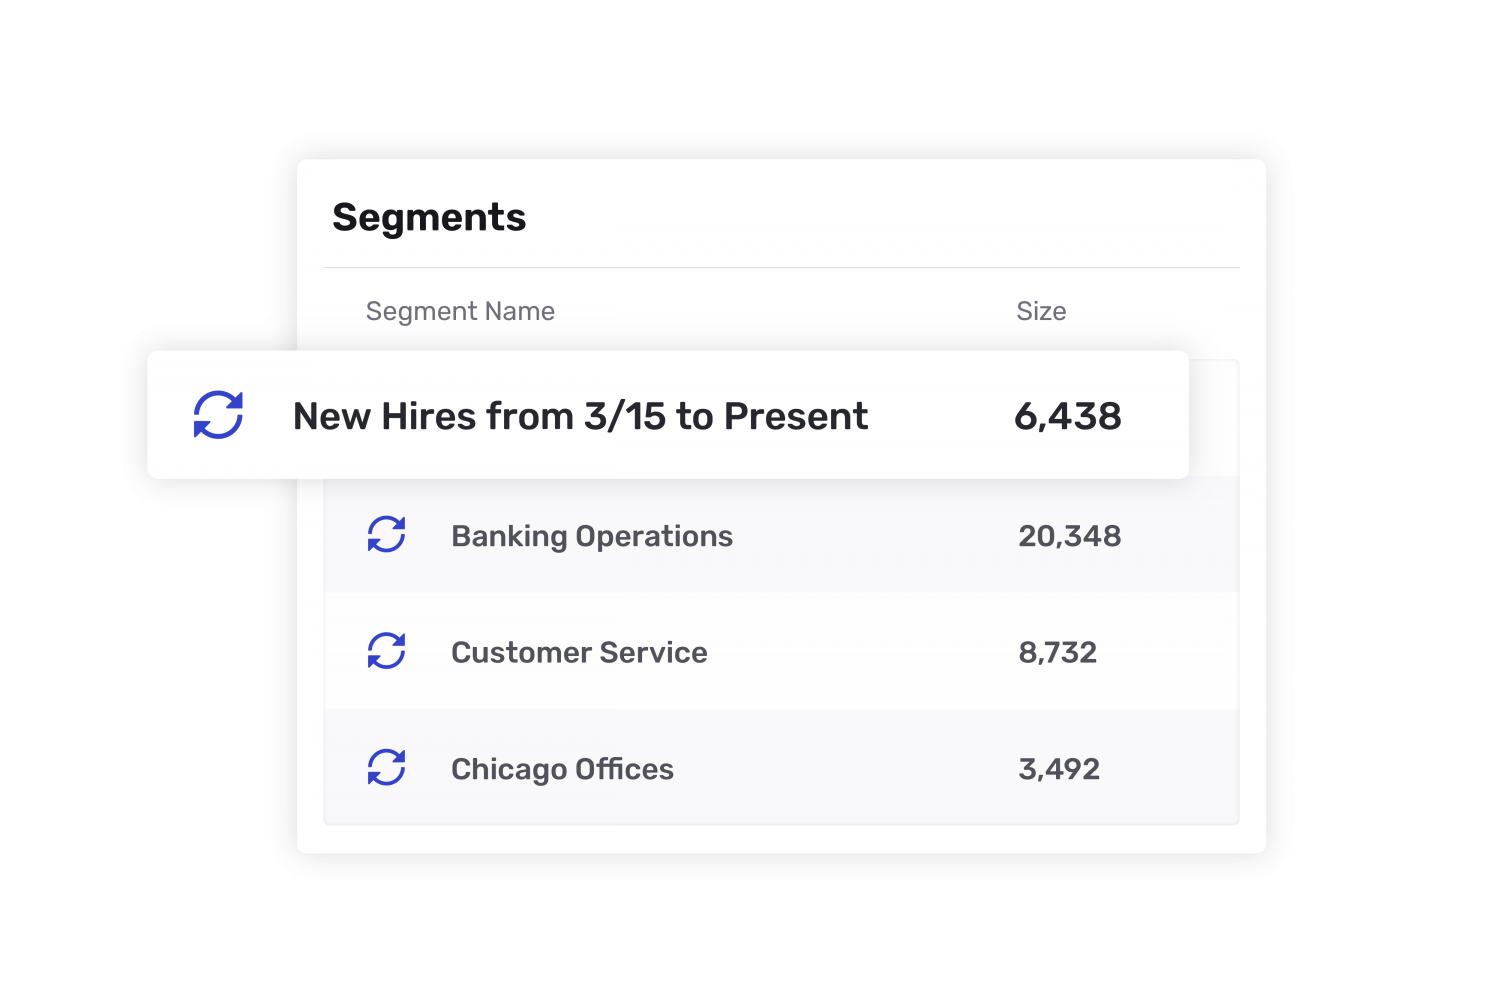 """Synced segments from your HRIS, highlighting a list called """"New Hires from 3/15 to Present"""""""